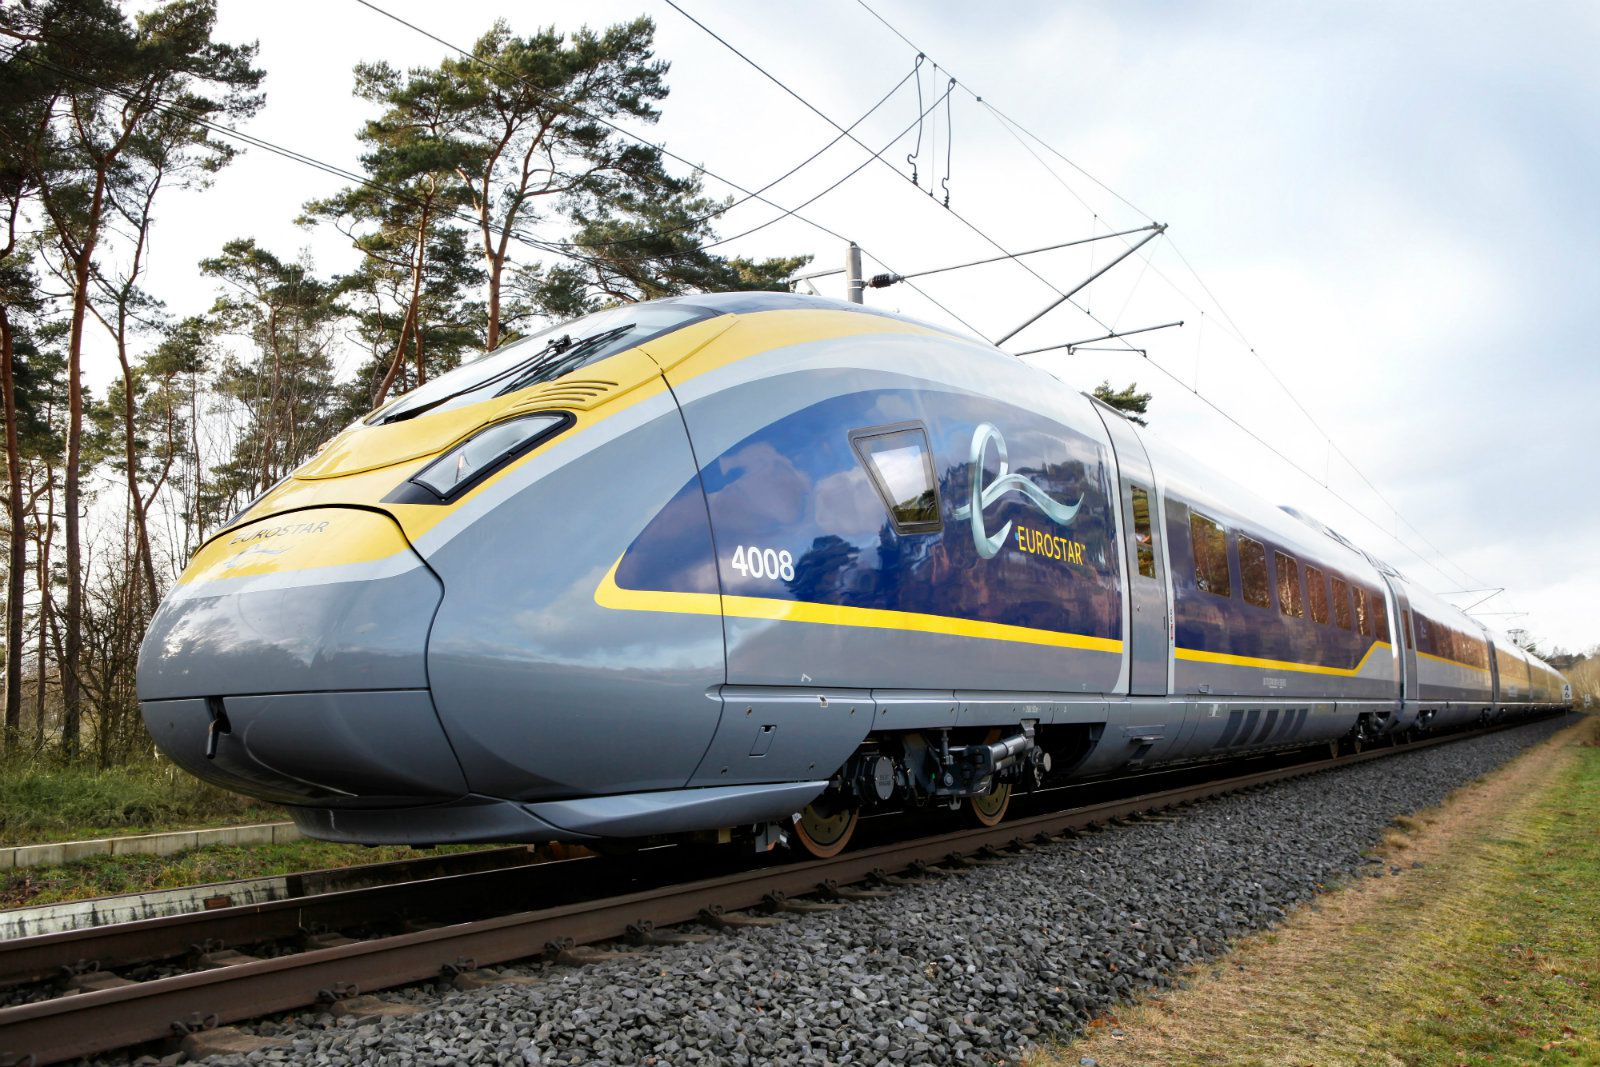 Rated at 16,000 kW, the Eurostar e320 (Class 374) reaches a top speed of 320 km/h. Carrying 900 passengers, the e320 boosts capacity per train by 20 percent compared to predecessor models.